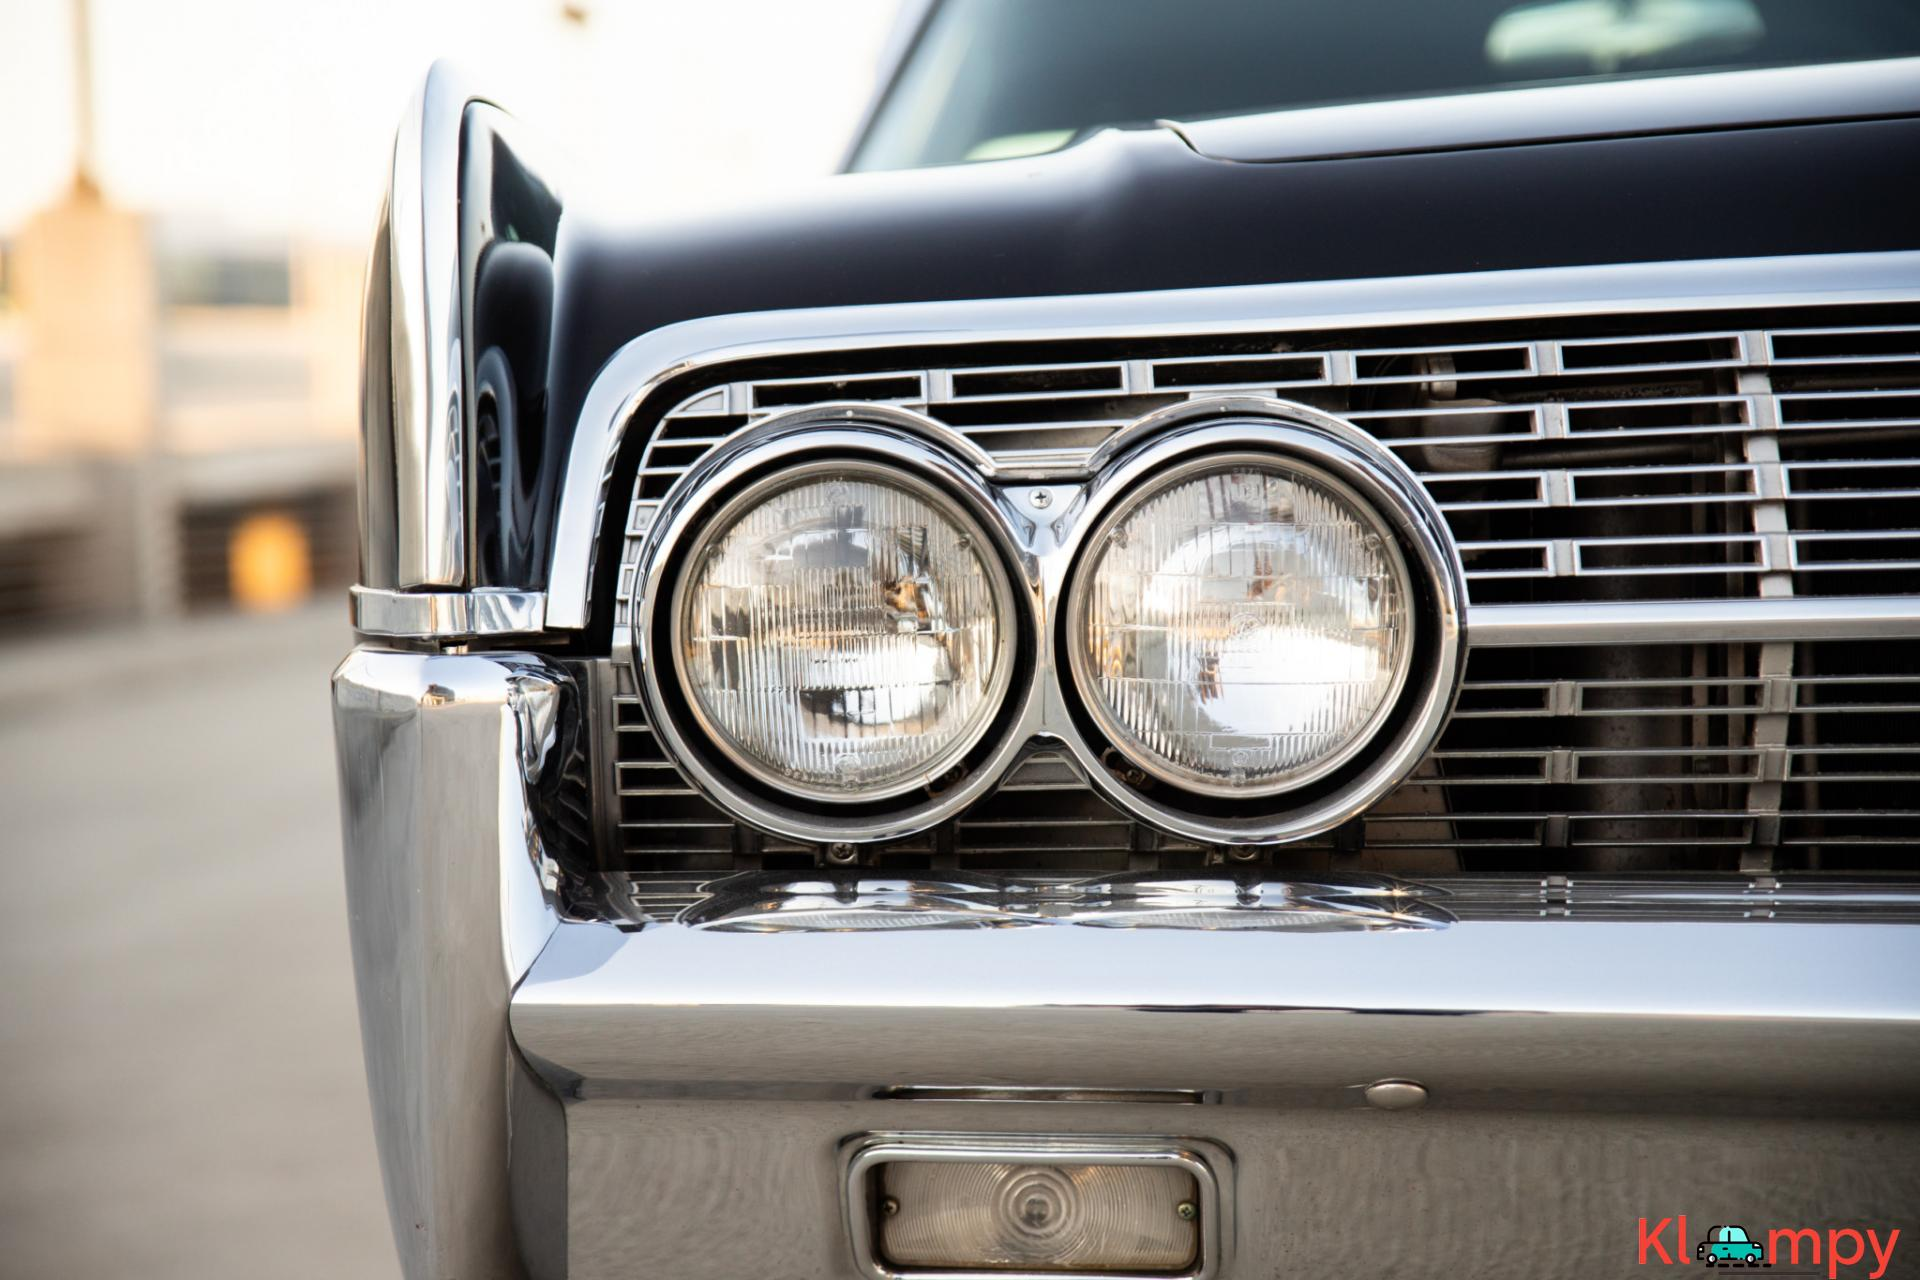 1962 Lincoln Continental Presidential Black - 14/19